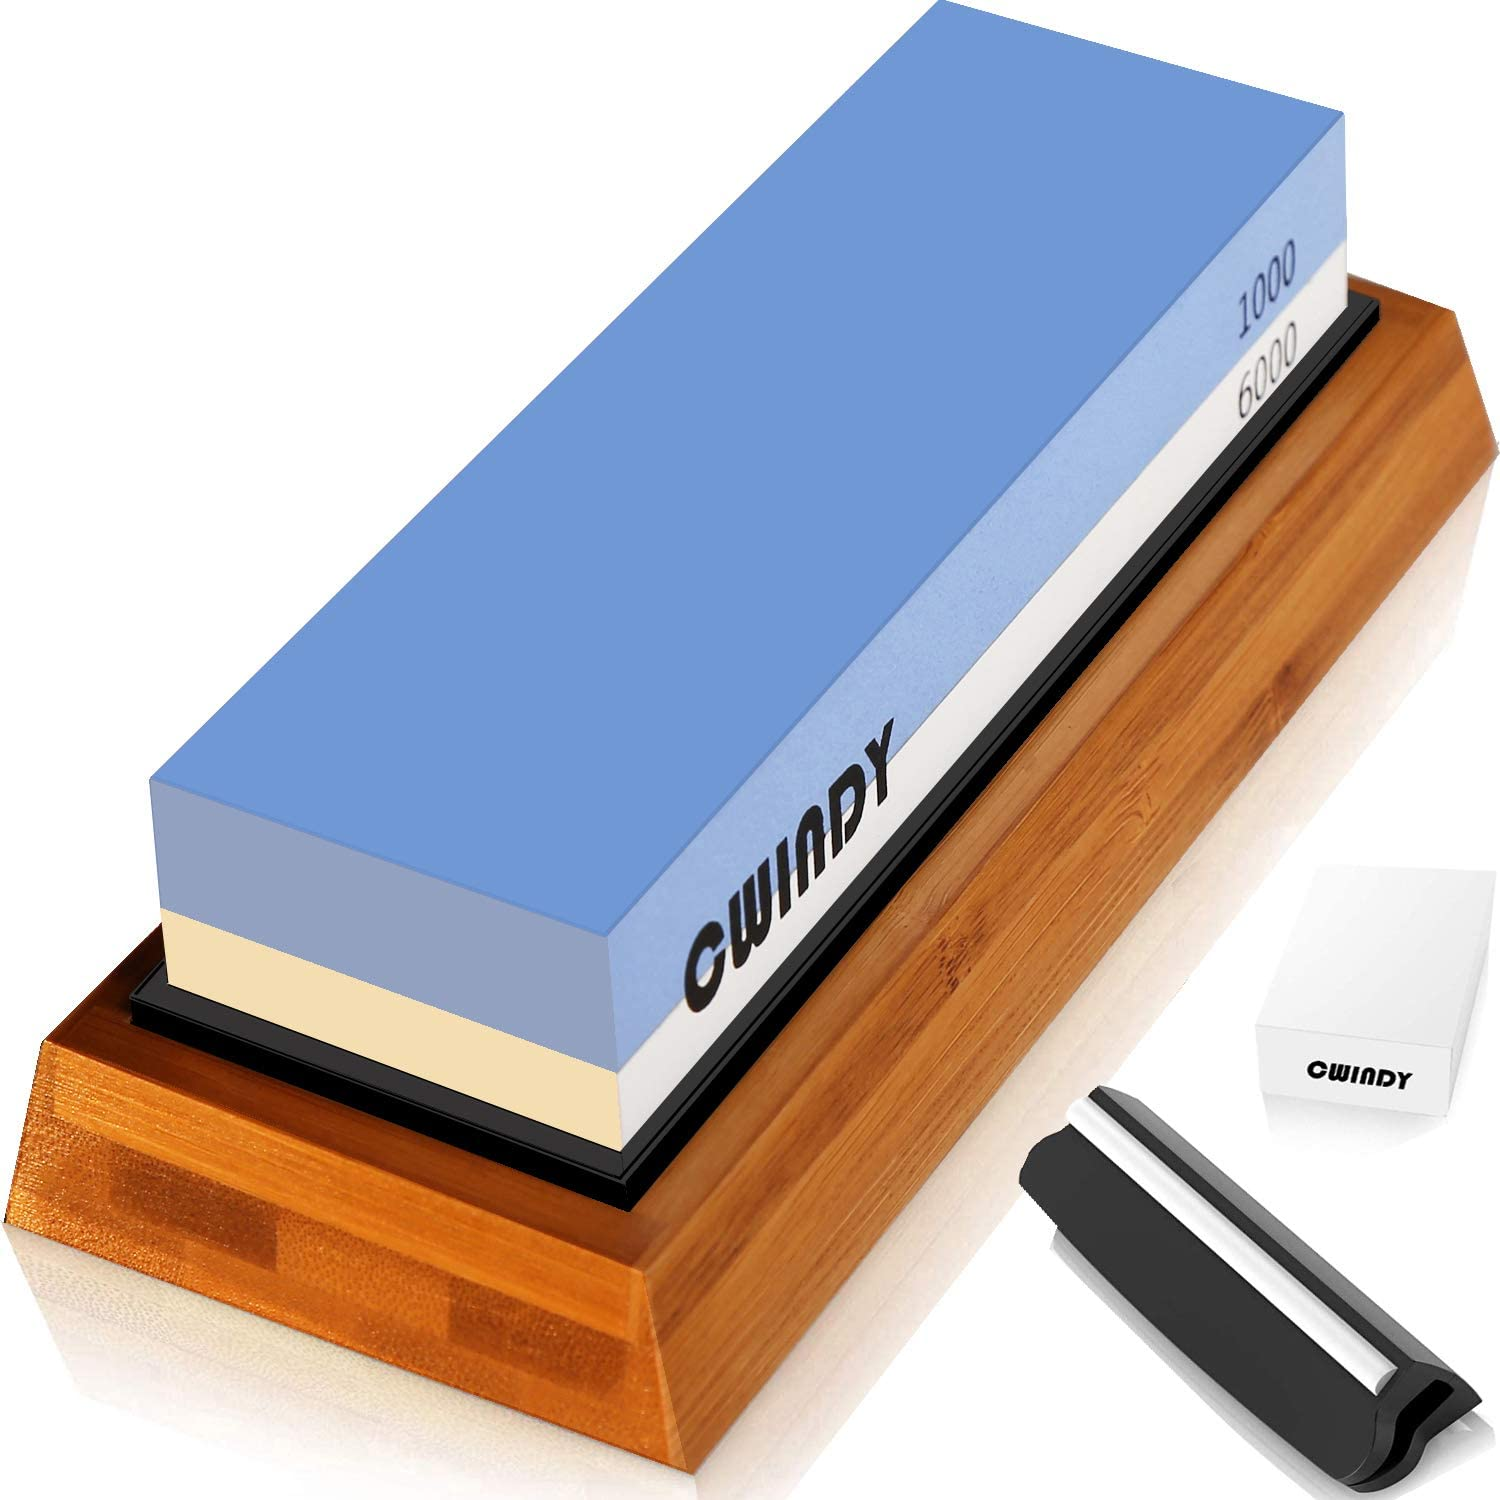 Sharpening Stone Whetstones Knife Sharpening Stones Waterstones Wetstones Wet Stones Knife Sharpener Stones 1000/6000 Grit Angle Guide, Bamboo Base and Fix Stone Included